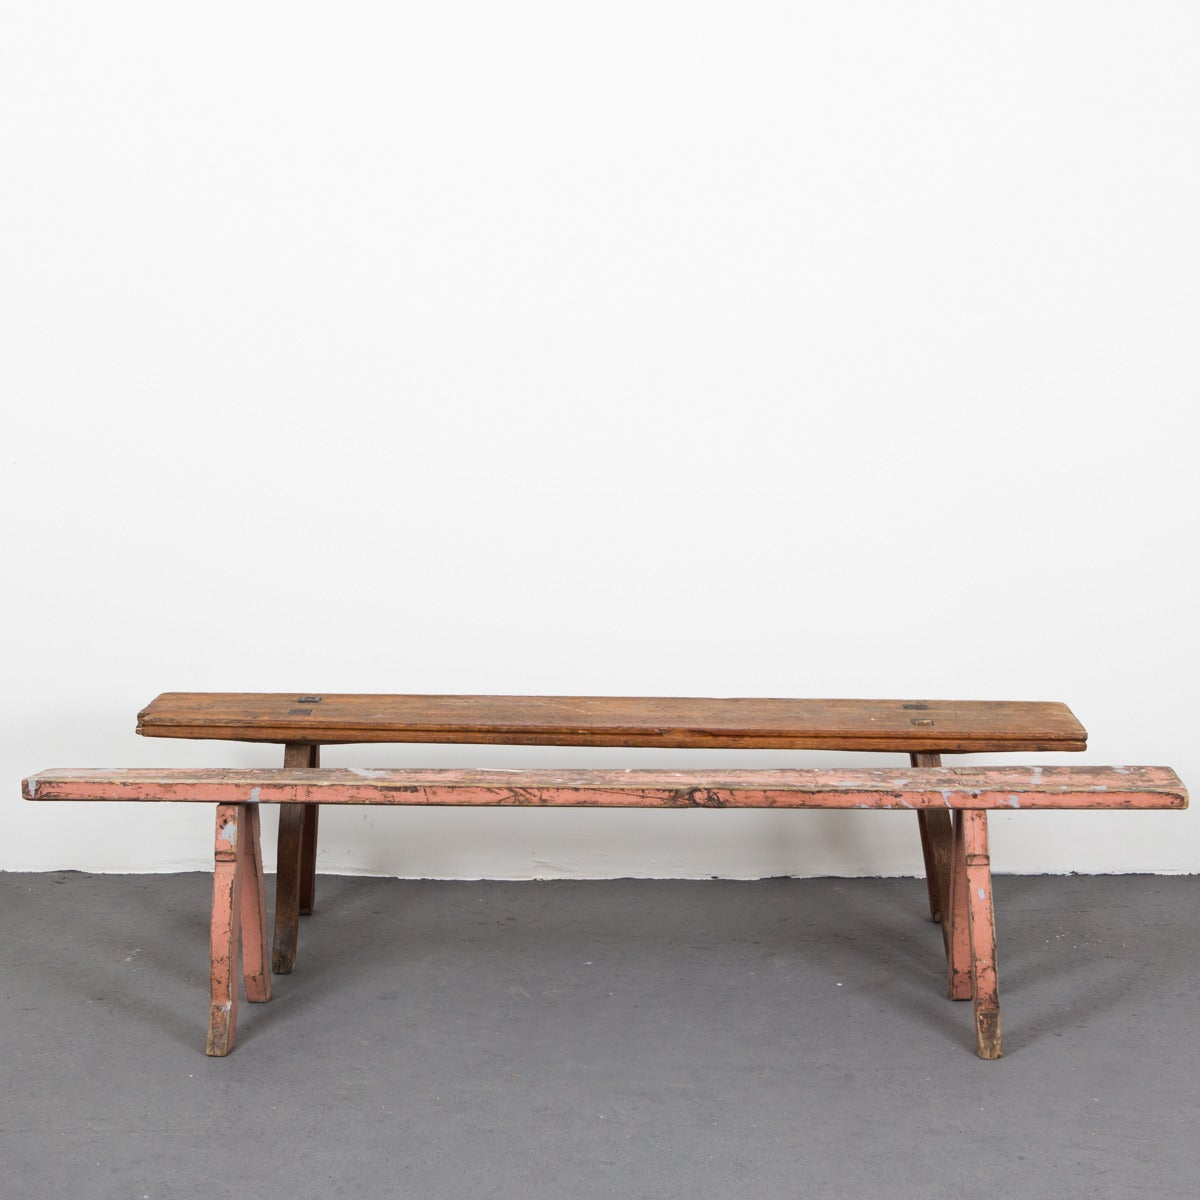 Swedish Bench With Pink Paint Leftovers For Sale At 1stdibs